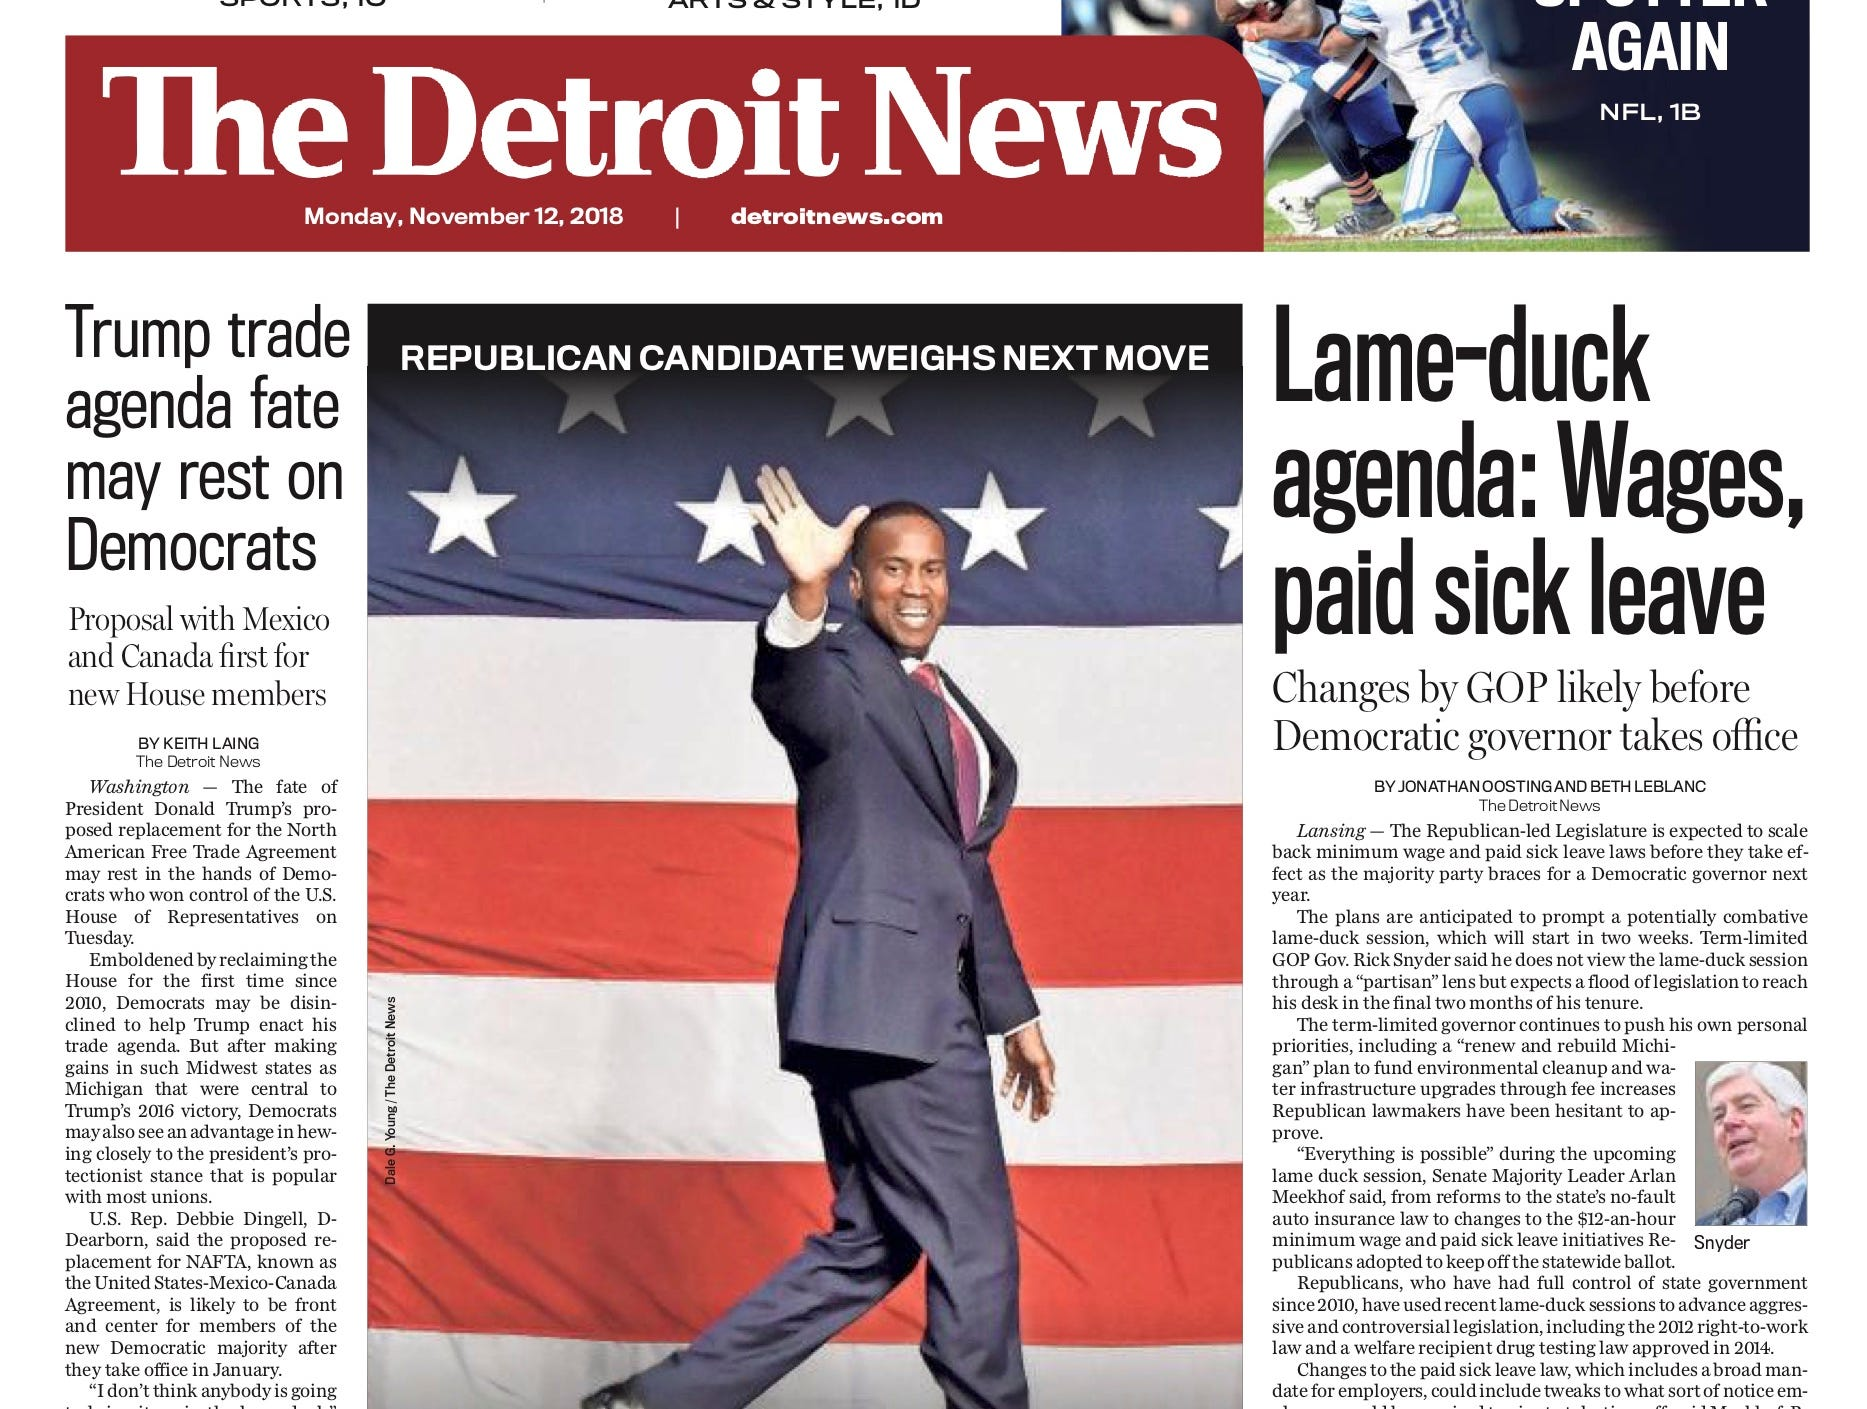 The front page of the Detroit News on November 12, 2018.